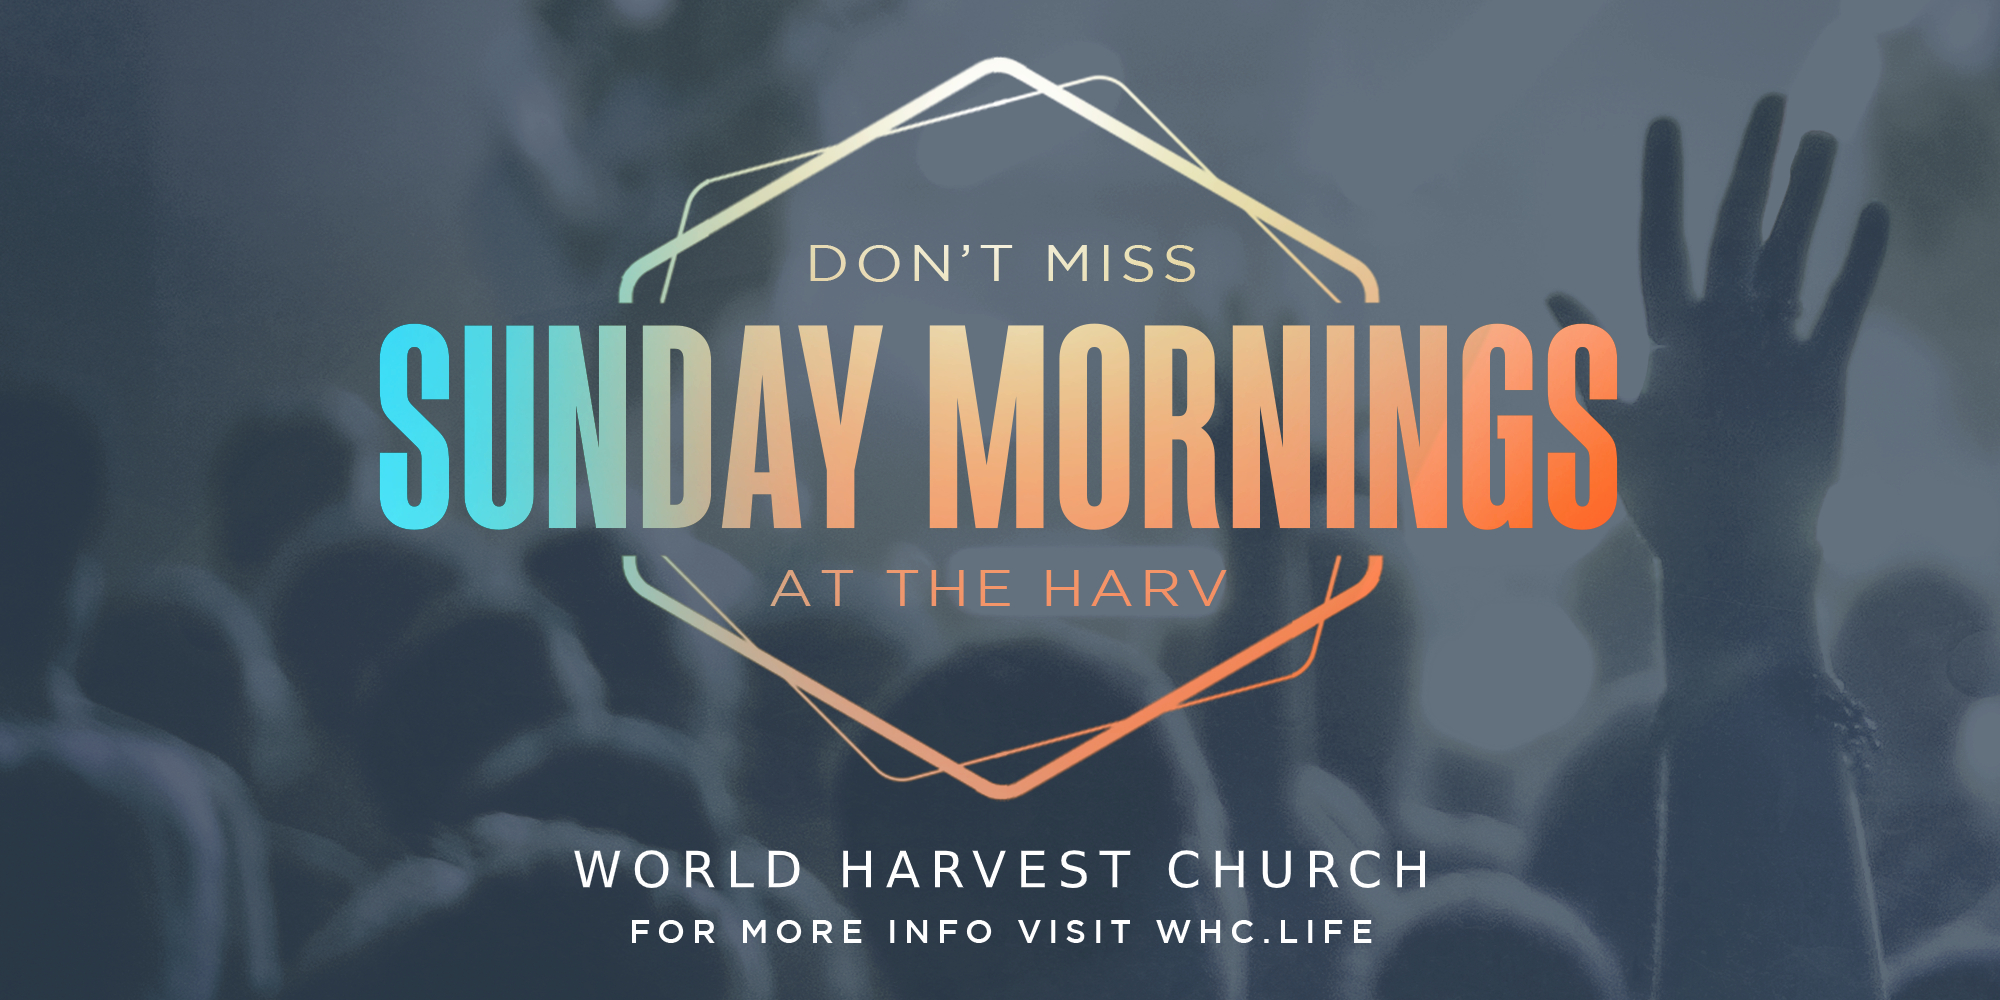 Dont Miss Sunda Mornings at the Harv World Harvedst Church For More Info Visit whc.life